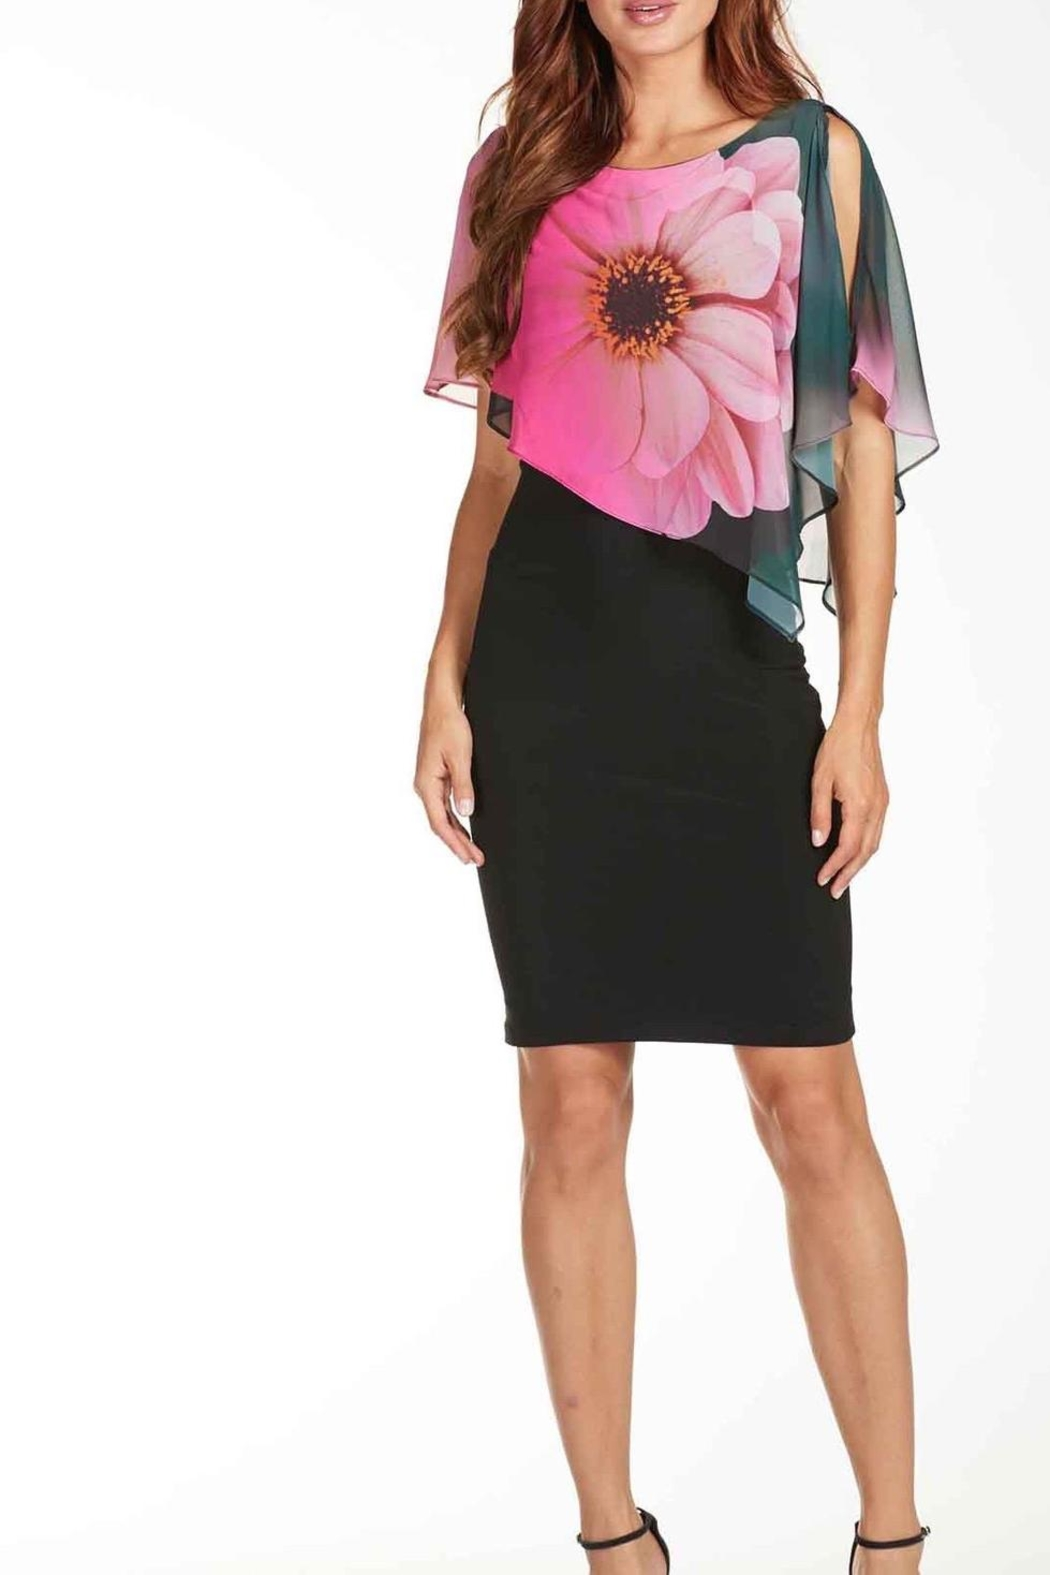 Frank Lyman Black Floral Bodycon Dress from Canada by Didi's ...